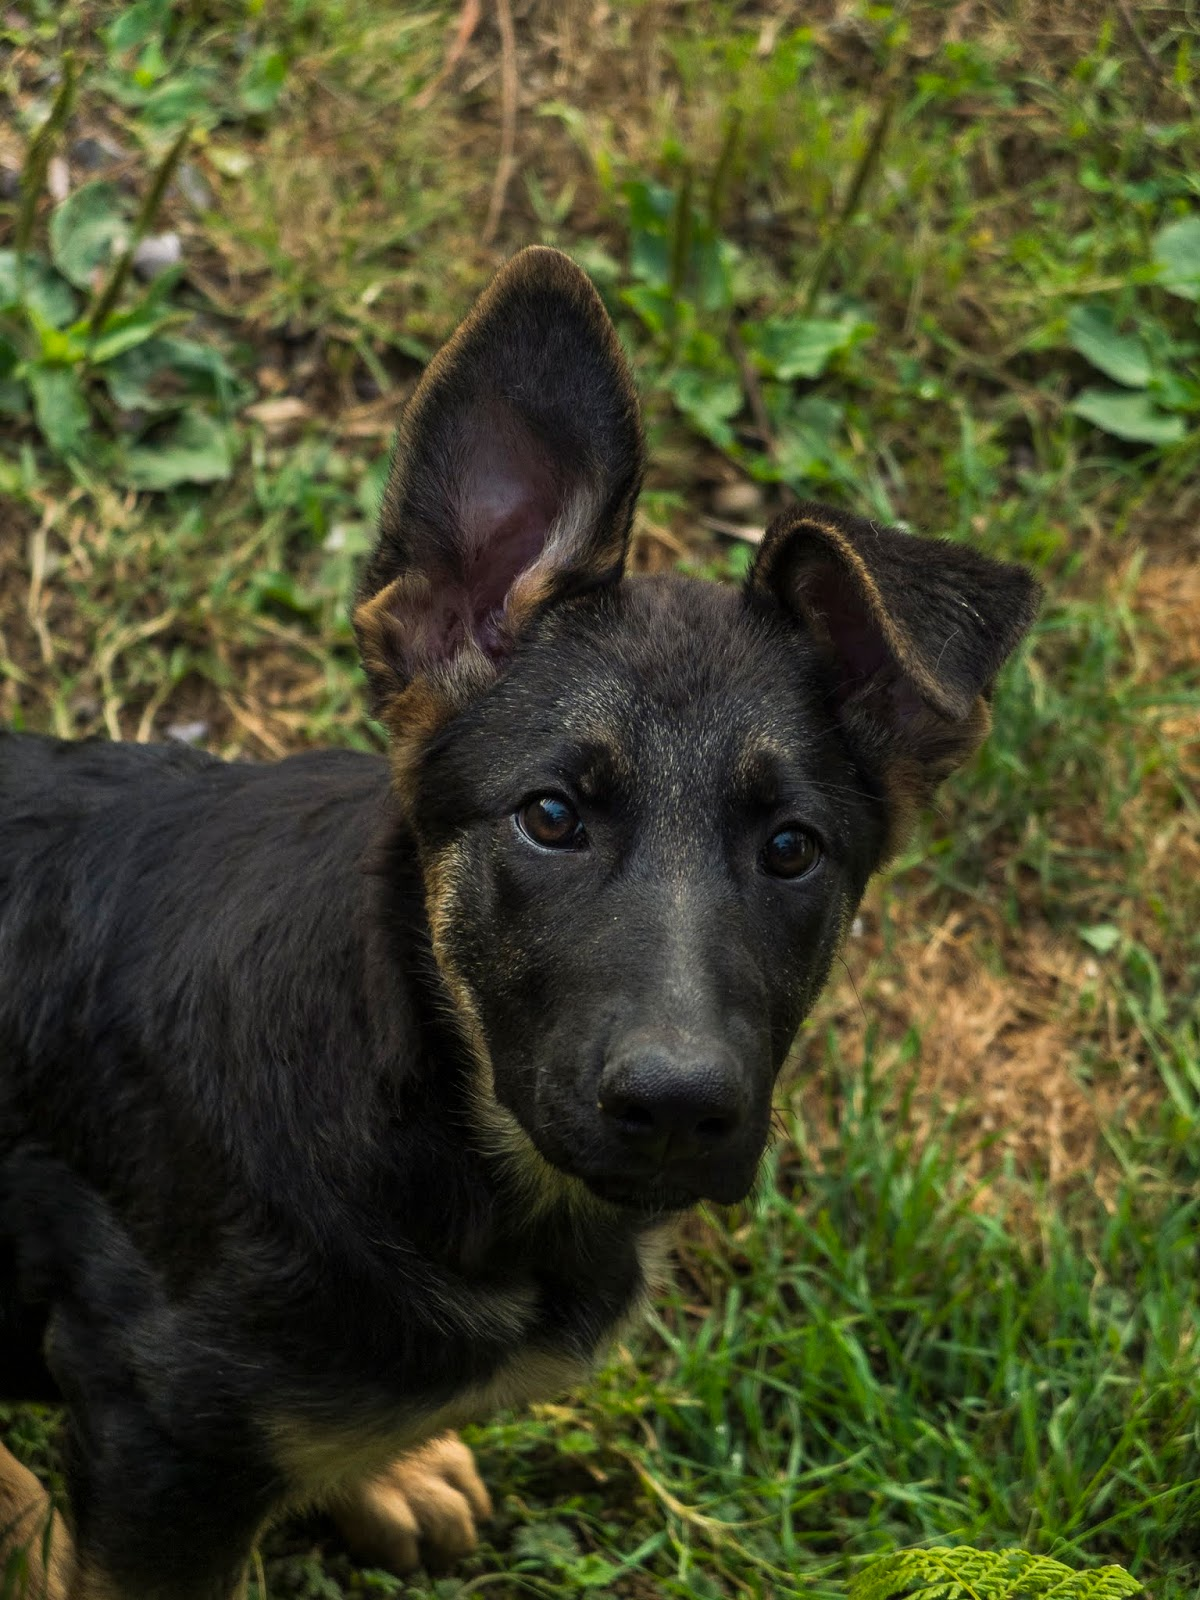 A German Shepherd puppy holding one ear up and looking up at the camera.